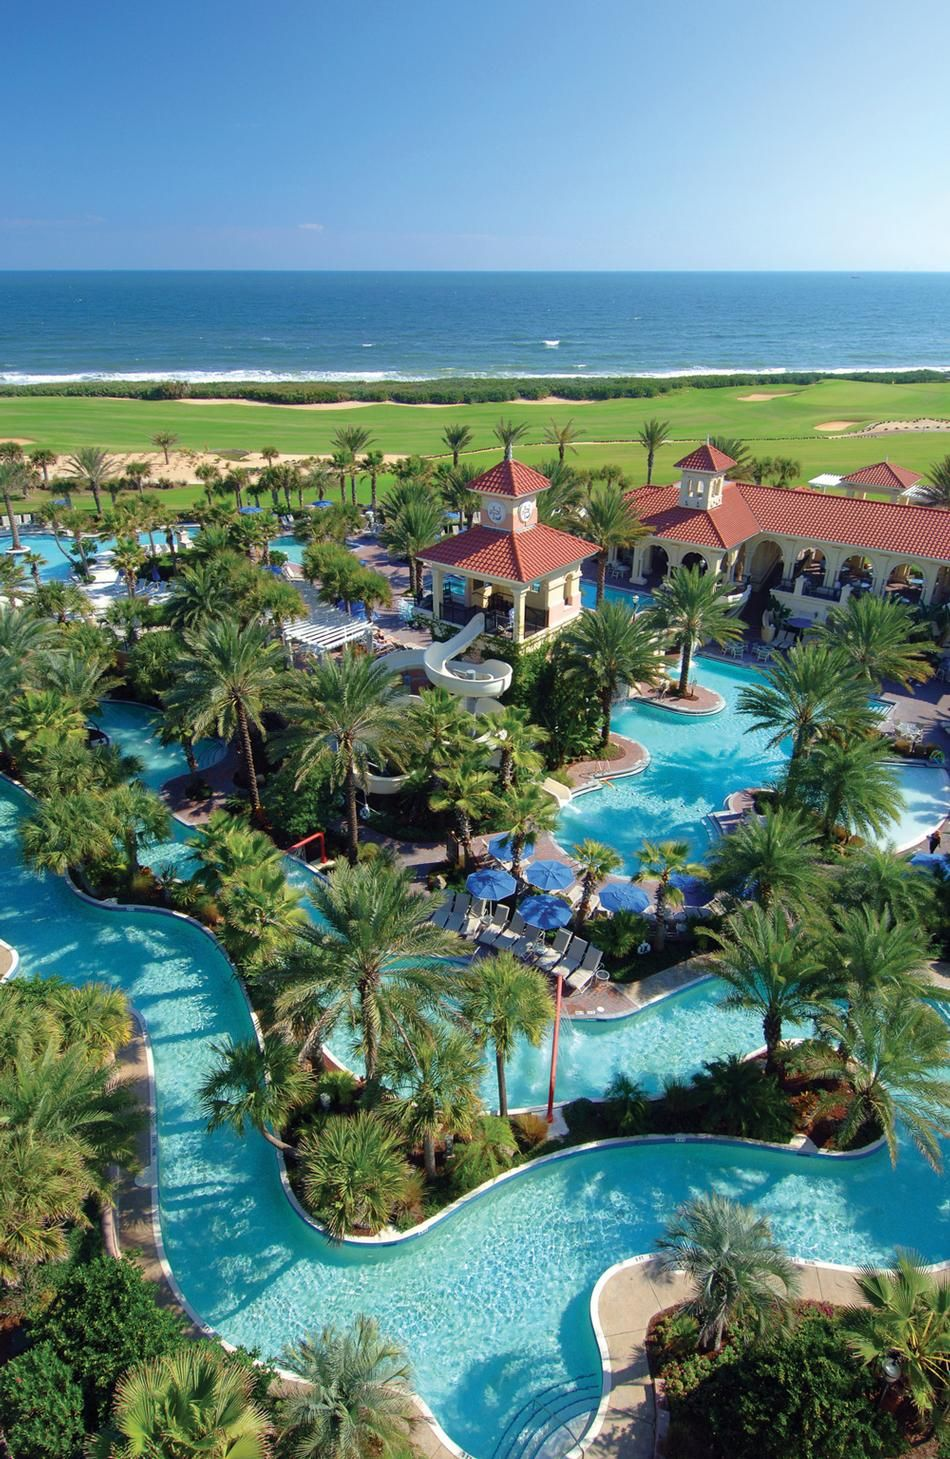 Hammock Beach Resort In Florida Best Destination Ever Looks Like Something A Dream